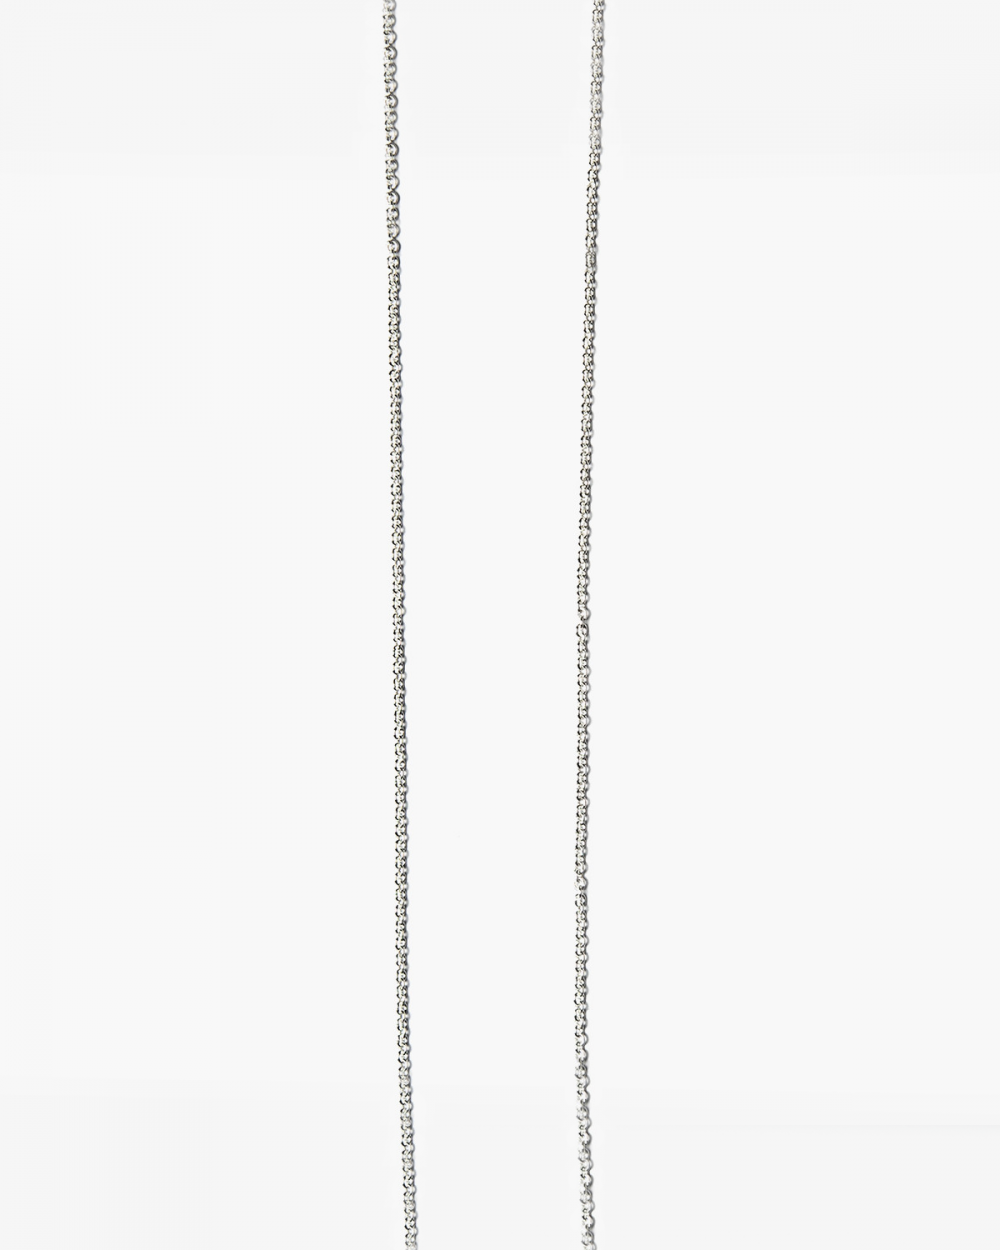 Necklaces CABLE CHAIN 040 NOVE25